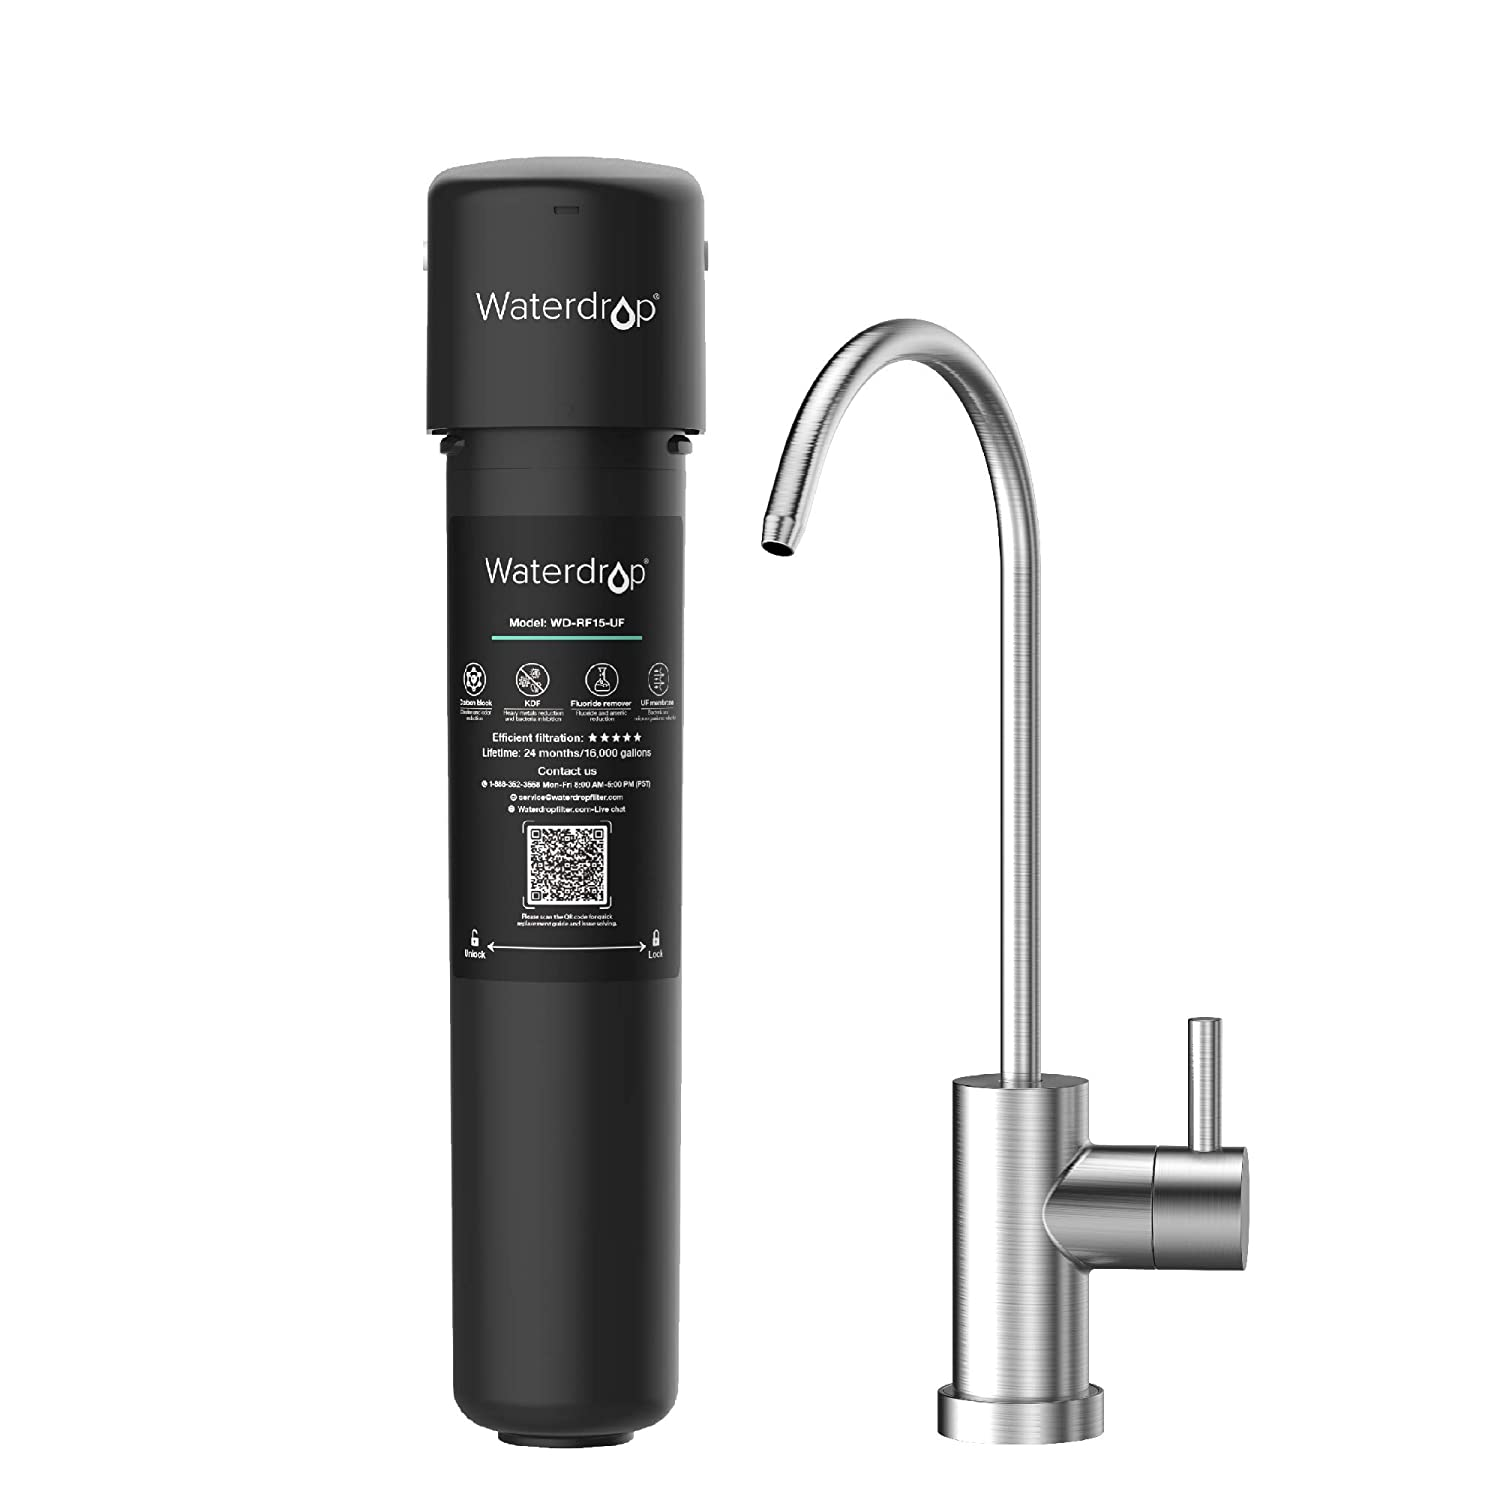 Waterdrop 15UB-UF Under Sink Water Filter System, 0.01 Micron Ultra Filtration Under Counter Drinking Water Filtration System, with Dedicated Brushed Nickel Faucet, 16K High Capacity, USA Tech